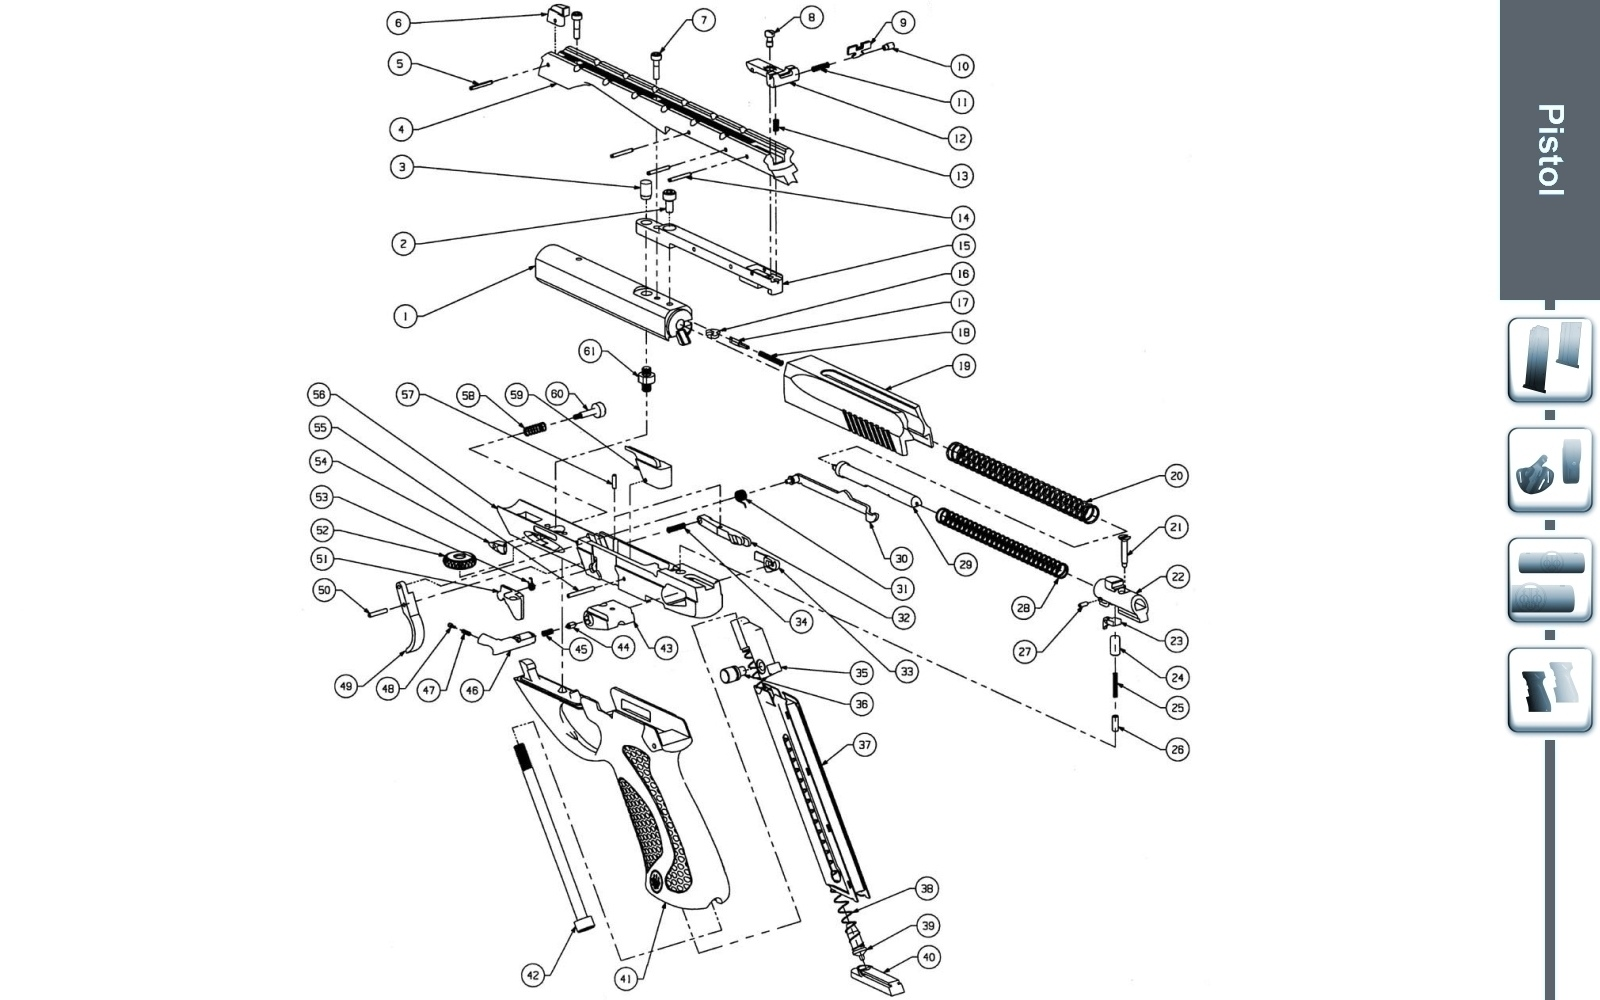 2000 Ford F 250 Wiring Diagram Brakes. Ford. Auto Wiring